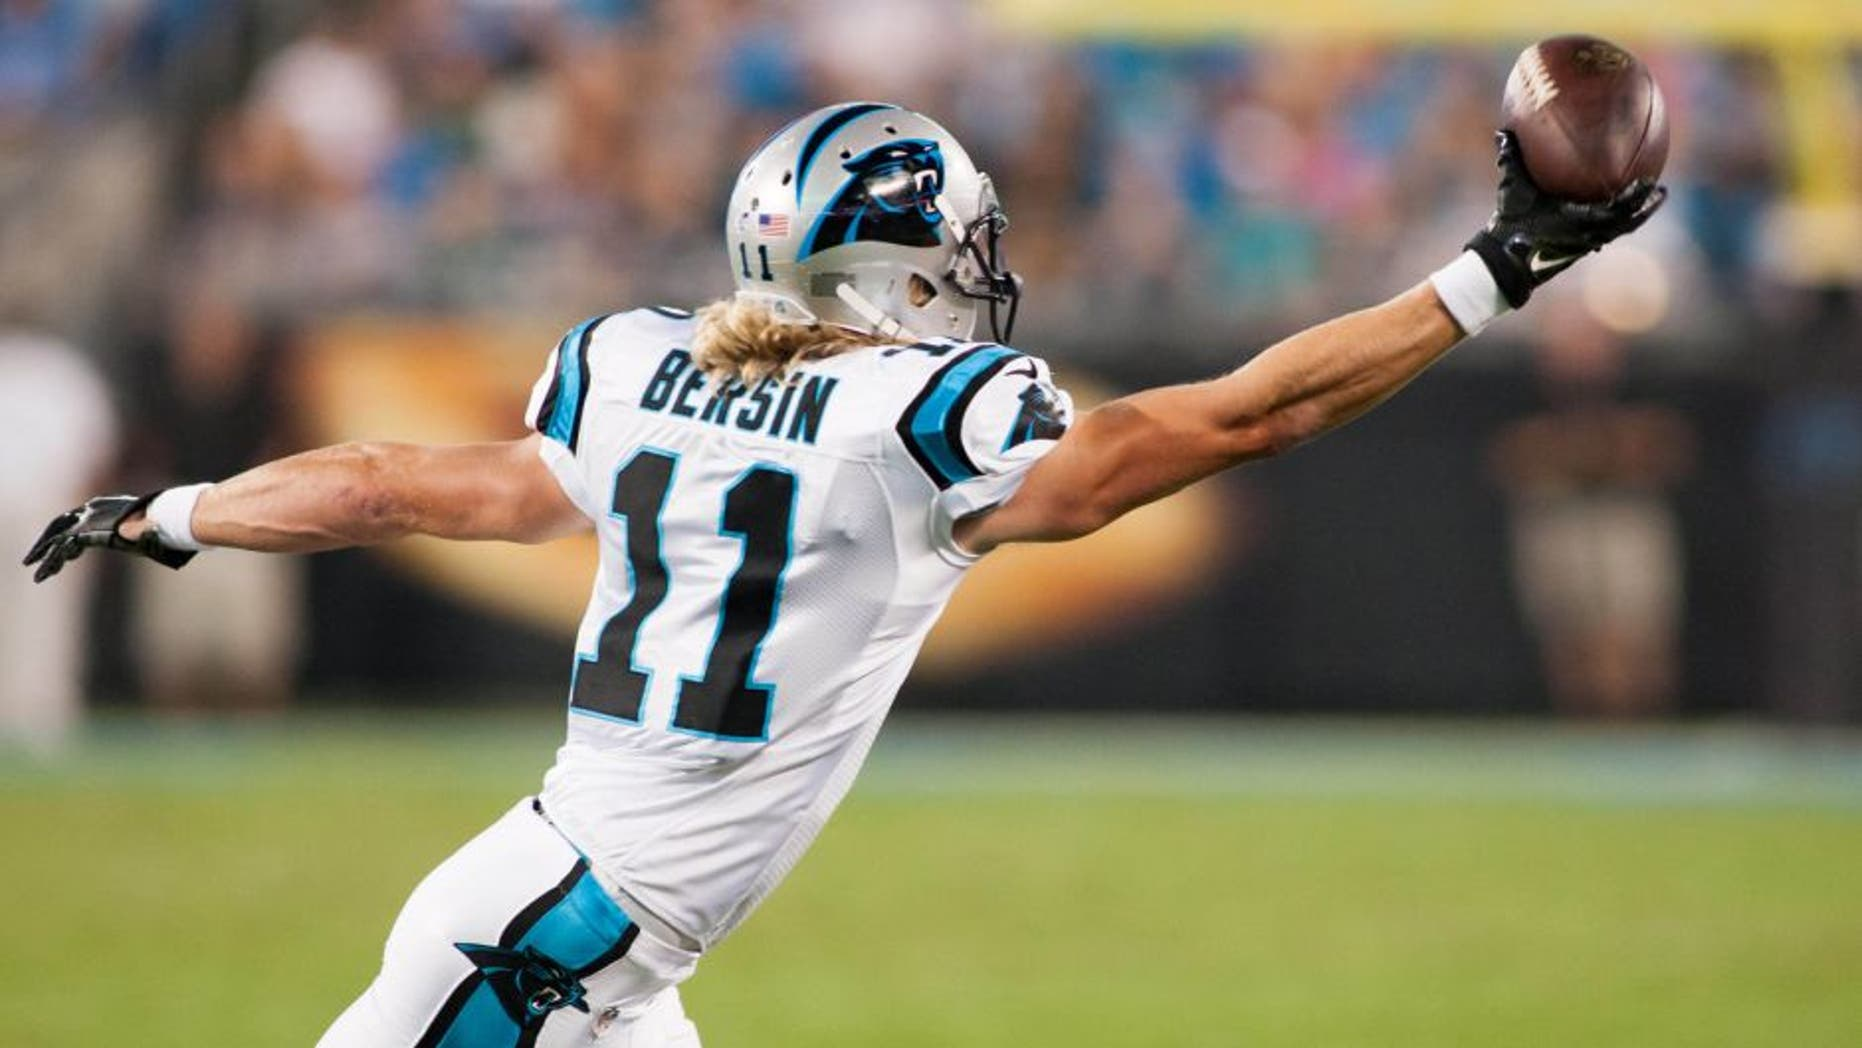 Aug 22, 2015; Charlotte, NC, USA; Carolina Panthers wide receiver Brenton Bersin (11) tries to catch a pass off his finger tips during the second quarter against the Miami Dolphins at Bank of America Stadium. Mandatory Credit: Jeremy Brevard-USA TODAY Sports